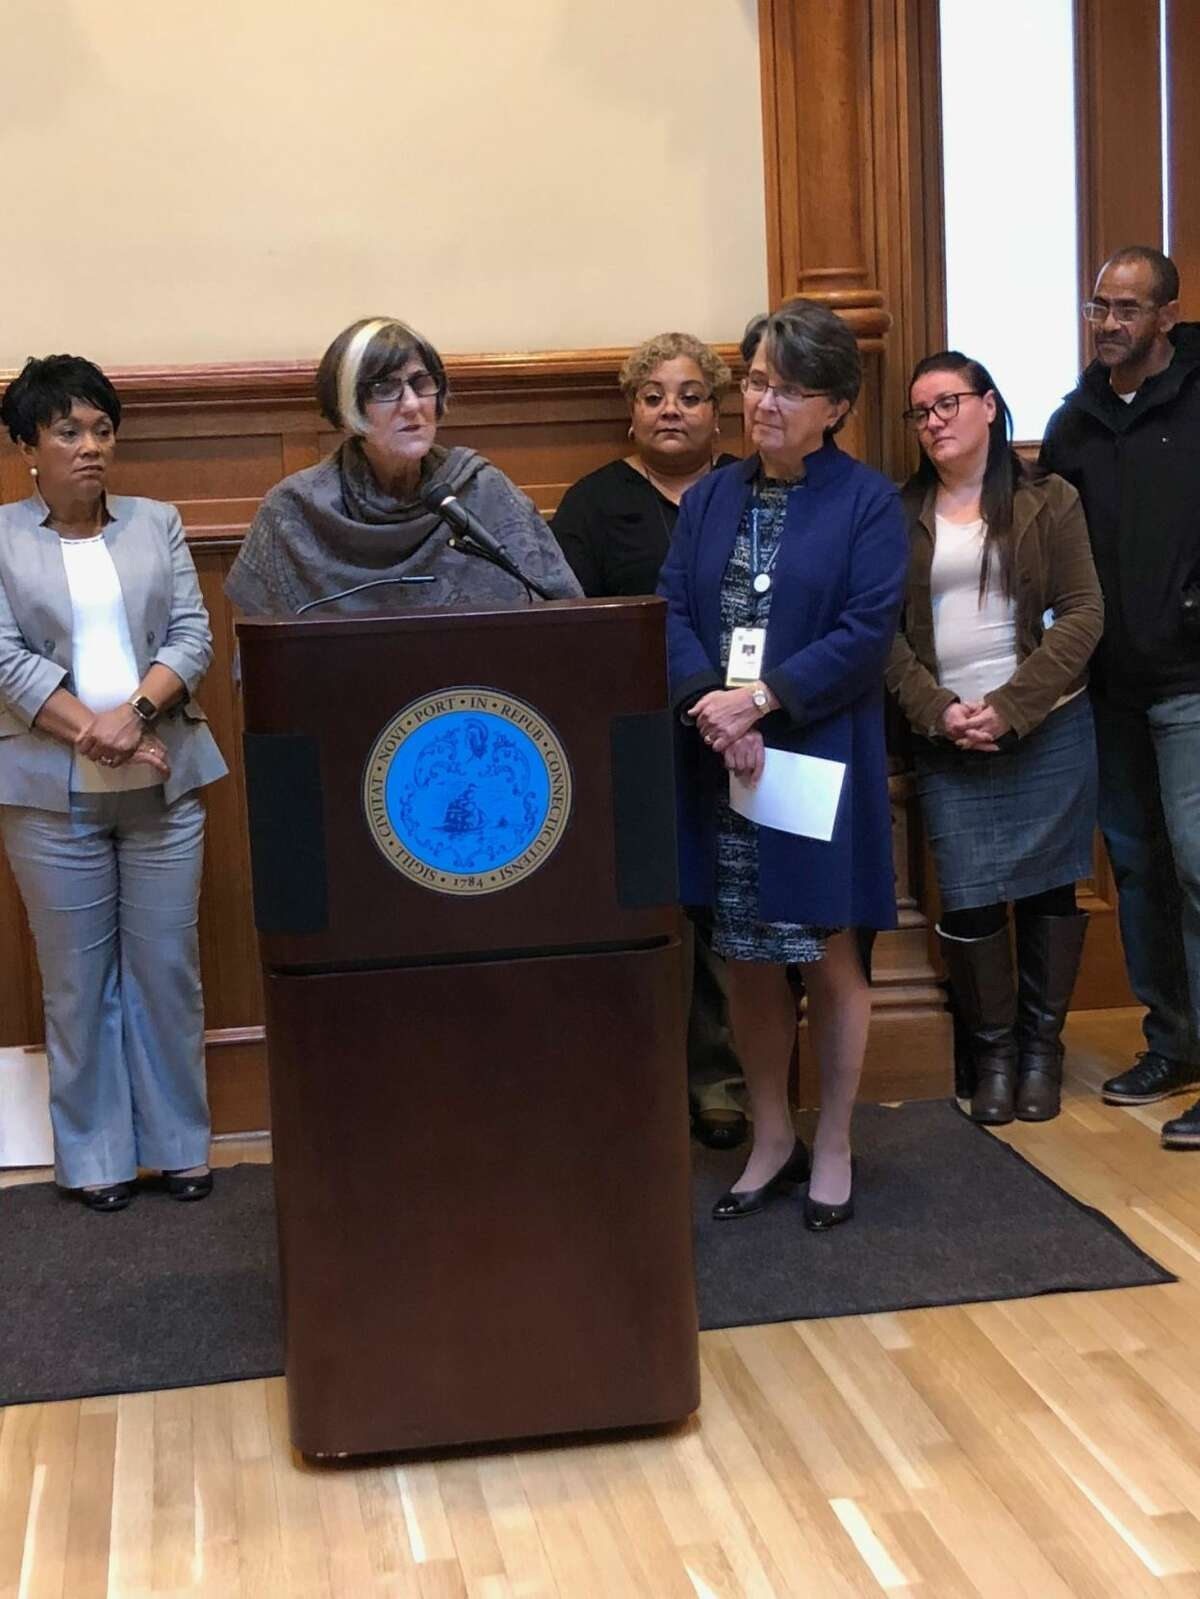 U.S. Rep. Rosa DeLauro, D-3, at podium, reminds residents to sign up for the Affordable Care Act. Far right is Pedro Garcia, who was able to get retroactive coverage when he discovered he had a heart issue. He is next to his wife, Marisol Velez.